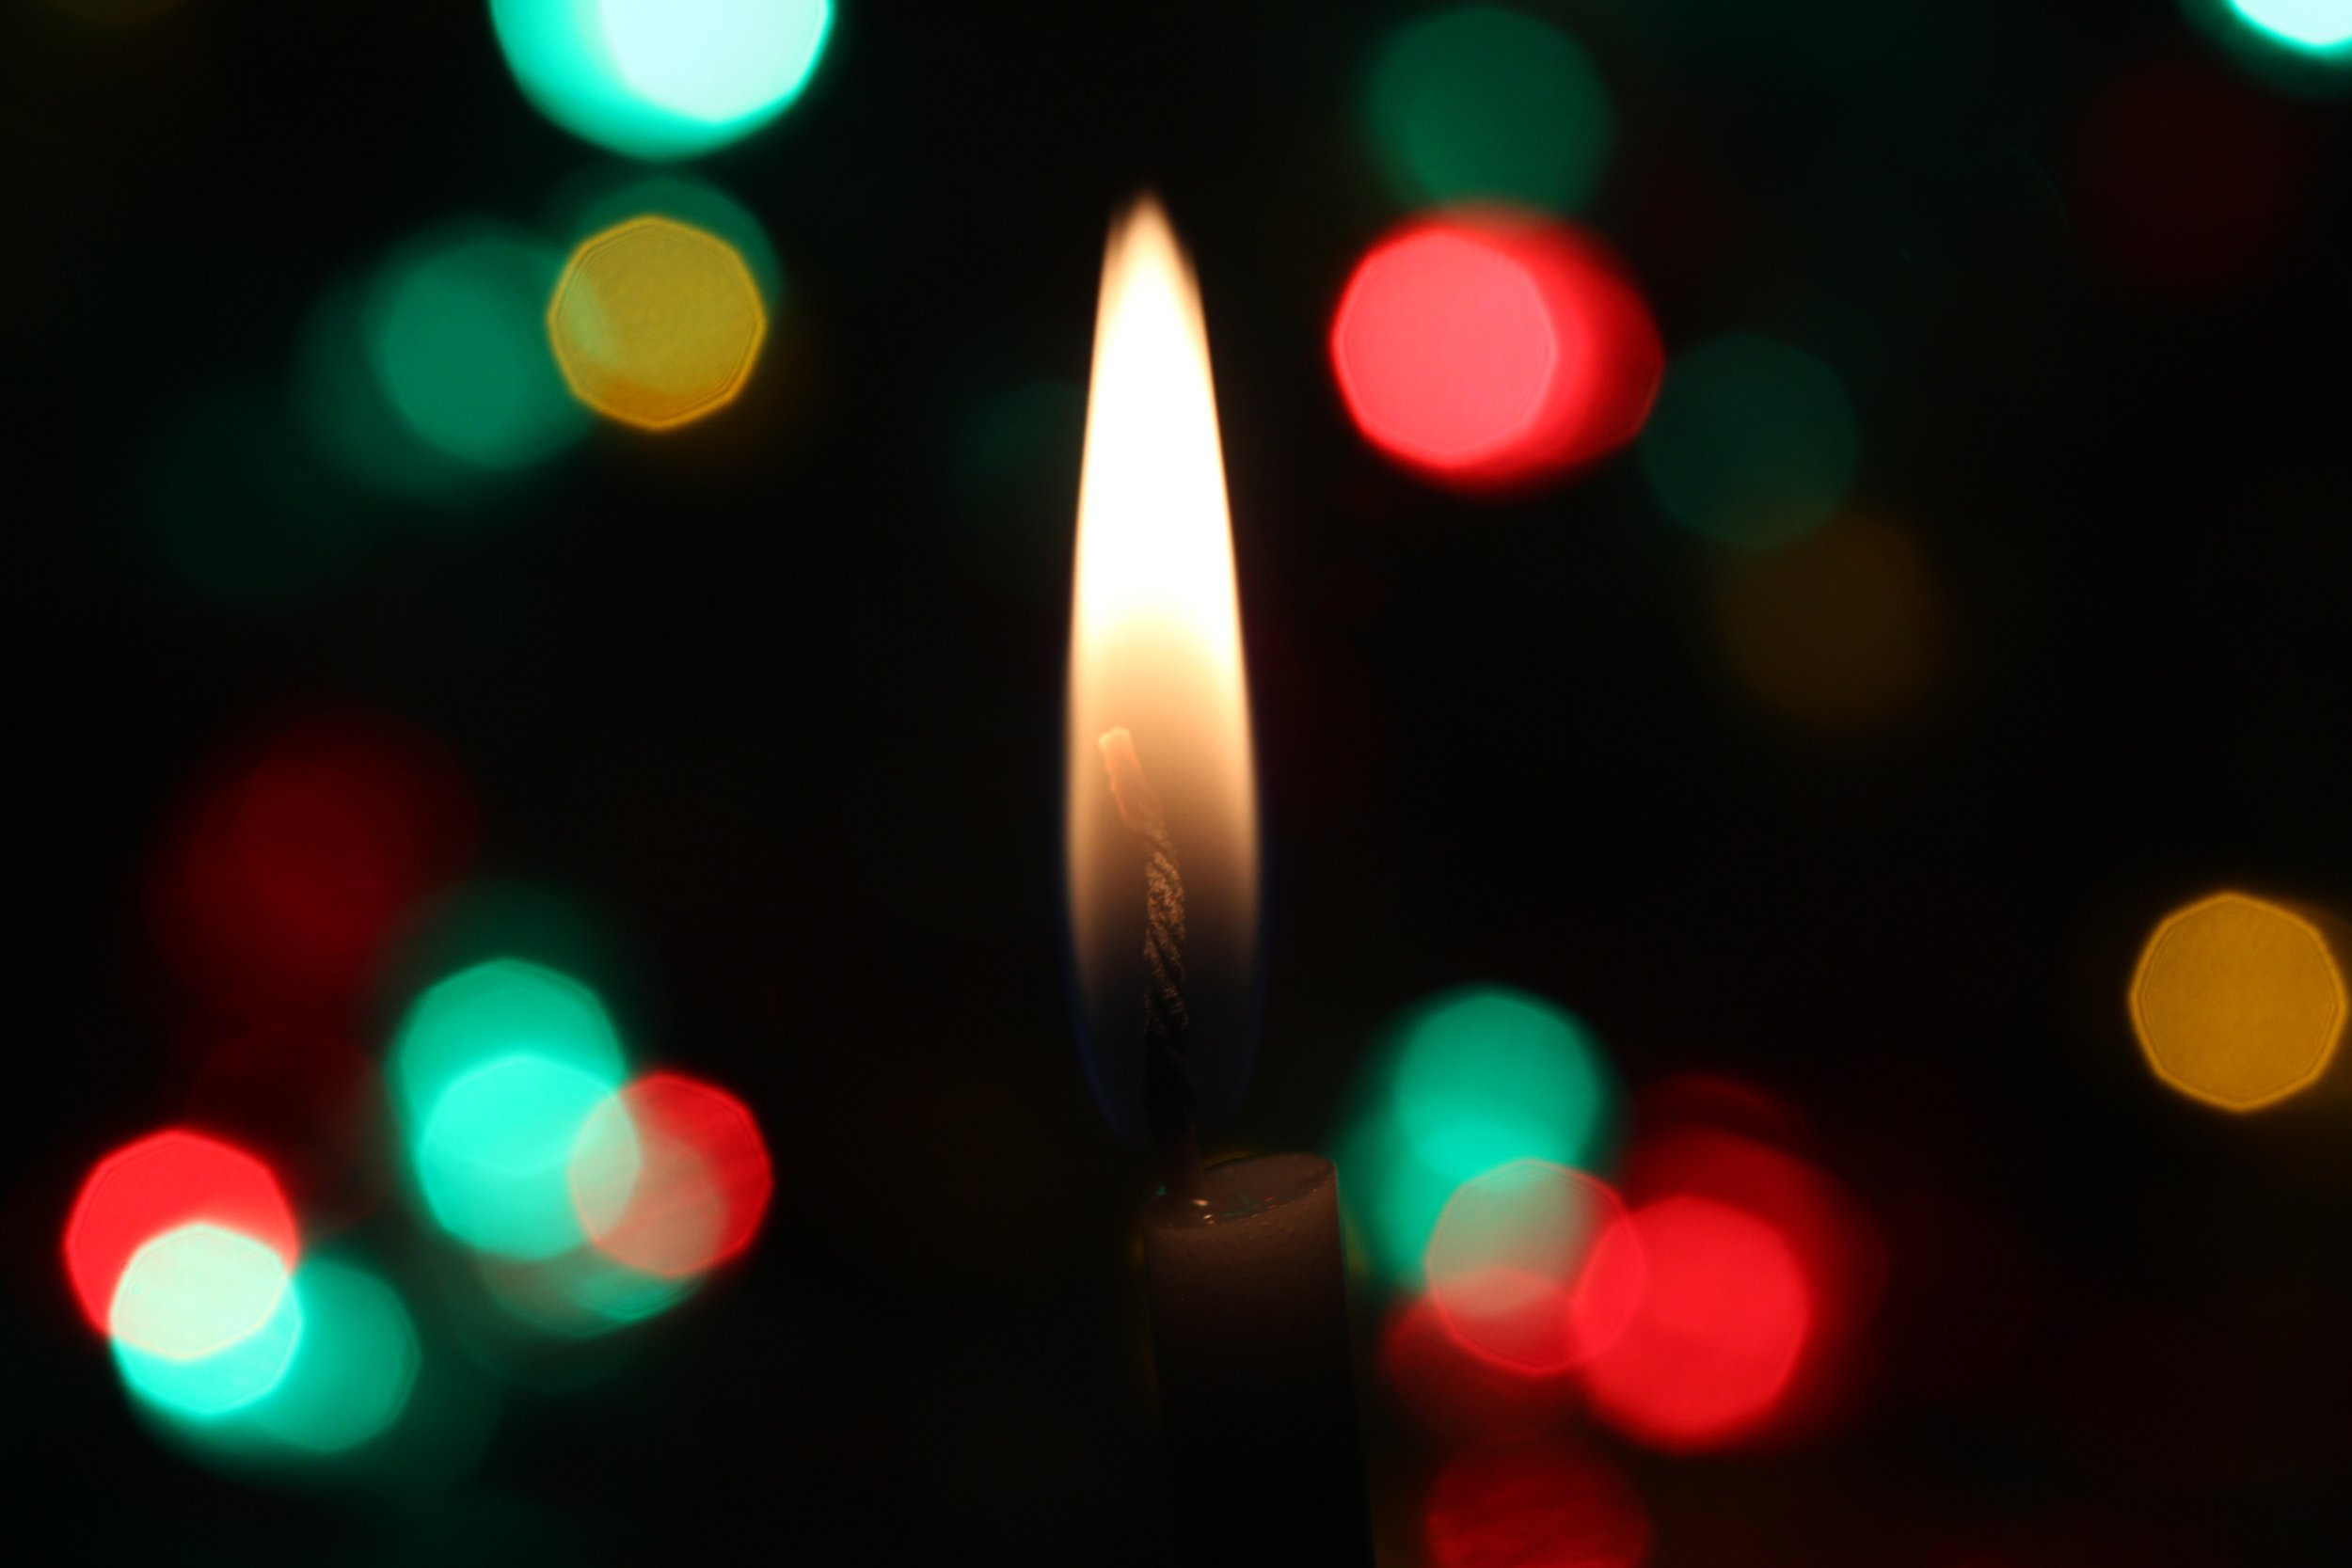 Festive Candle Lights for Winter Solstice 2017